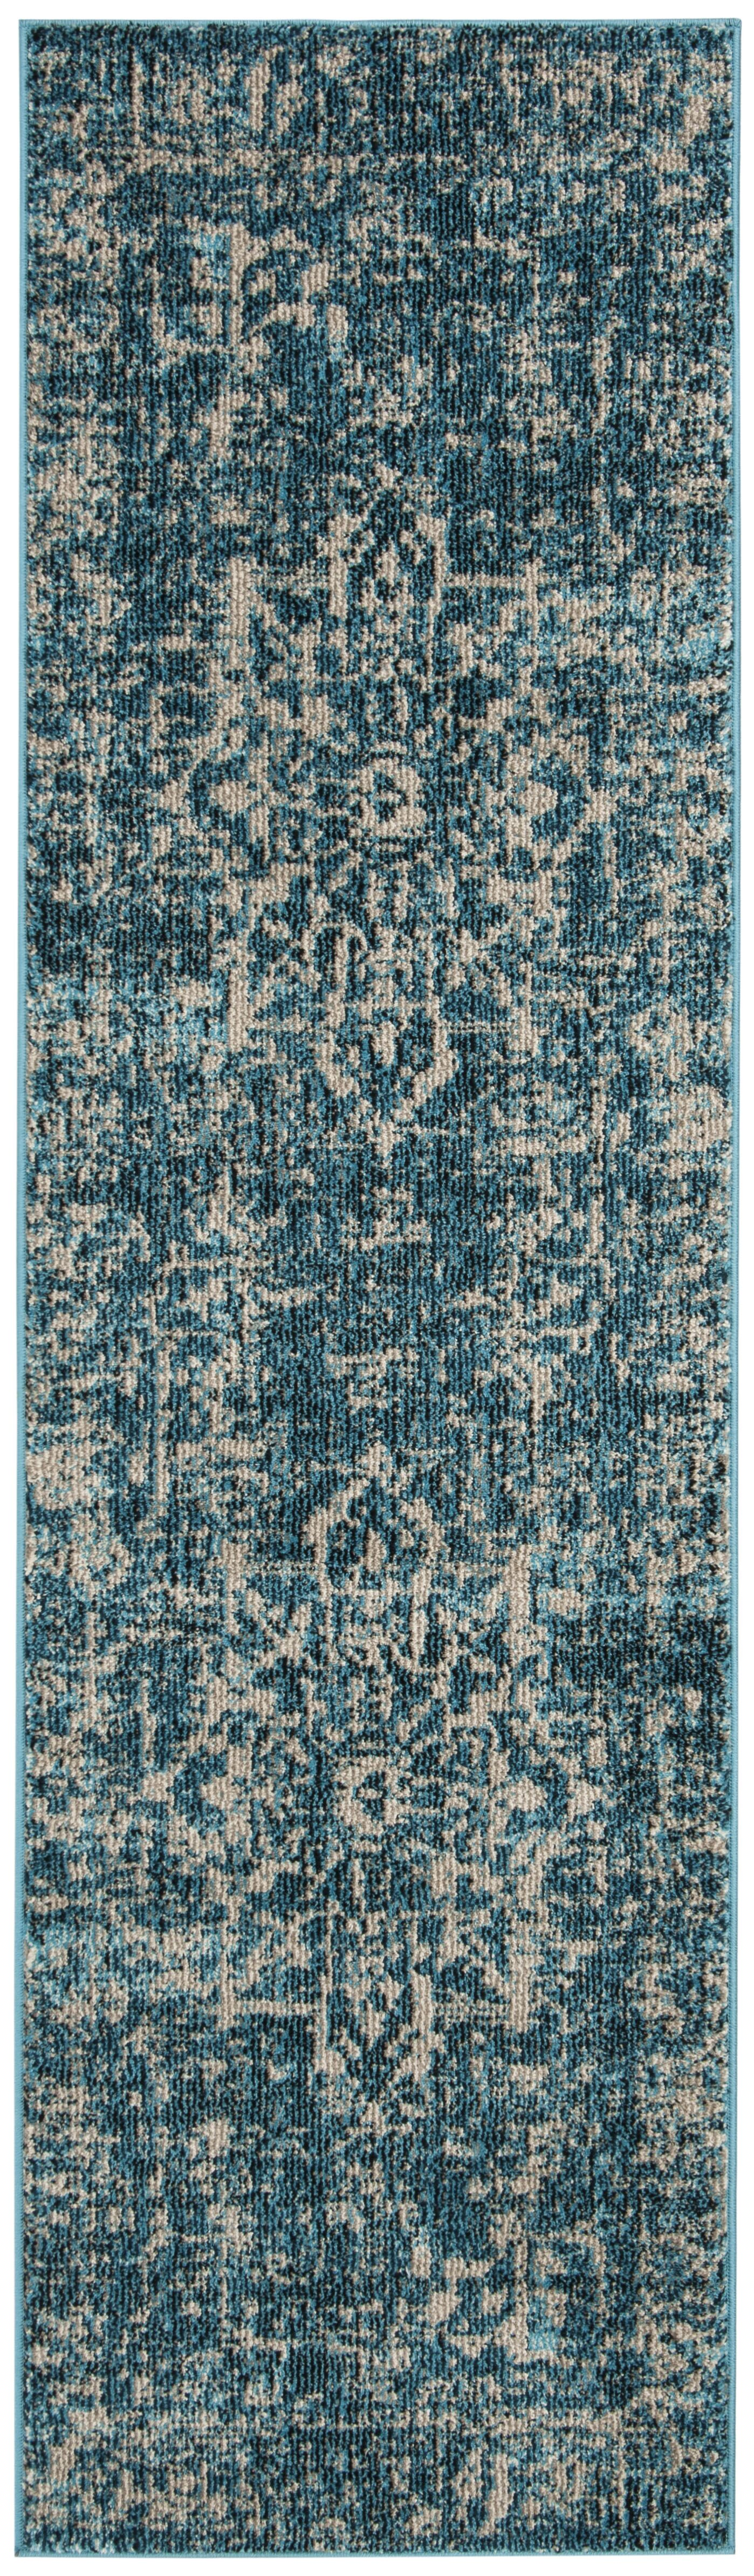 Grieve Turquoise/Ivory Area Rug Rug Size: Rectangle 9' x 12'